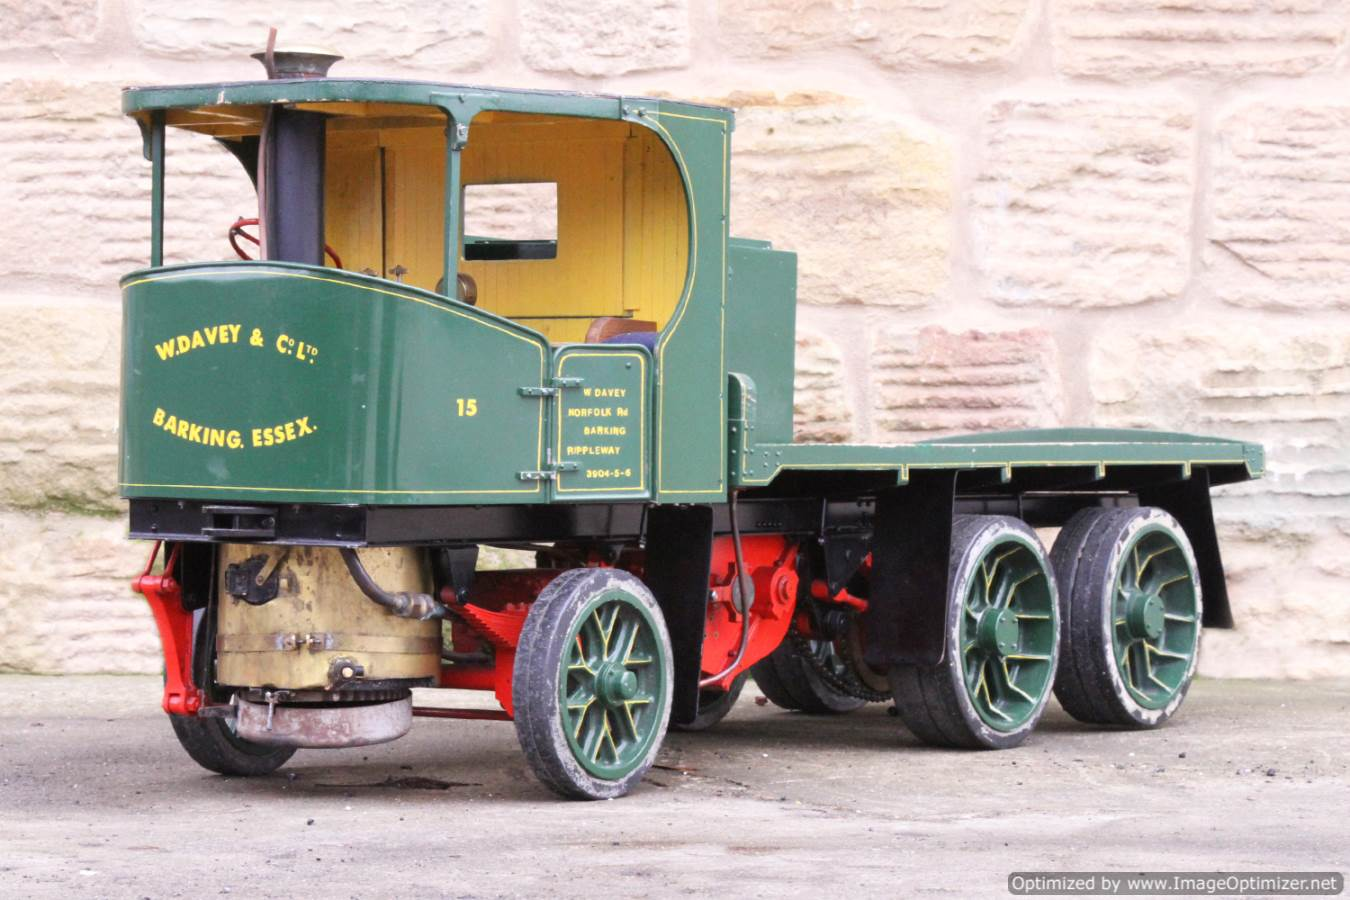 test Cayton twin axle live steam lorry for sale 09 Optimized